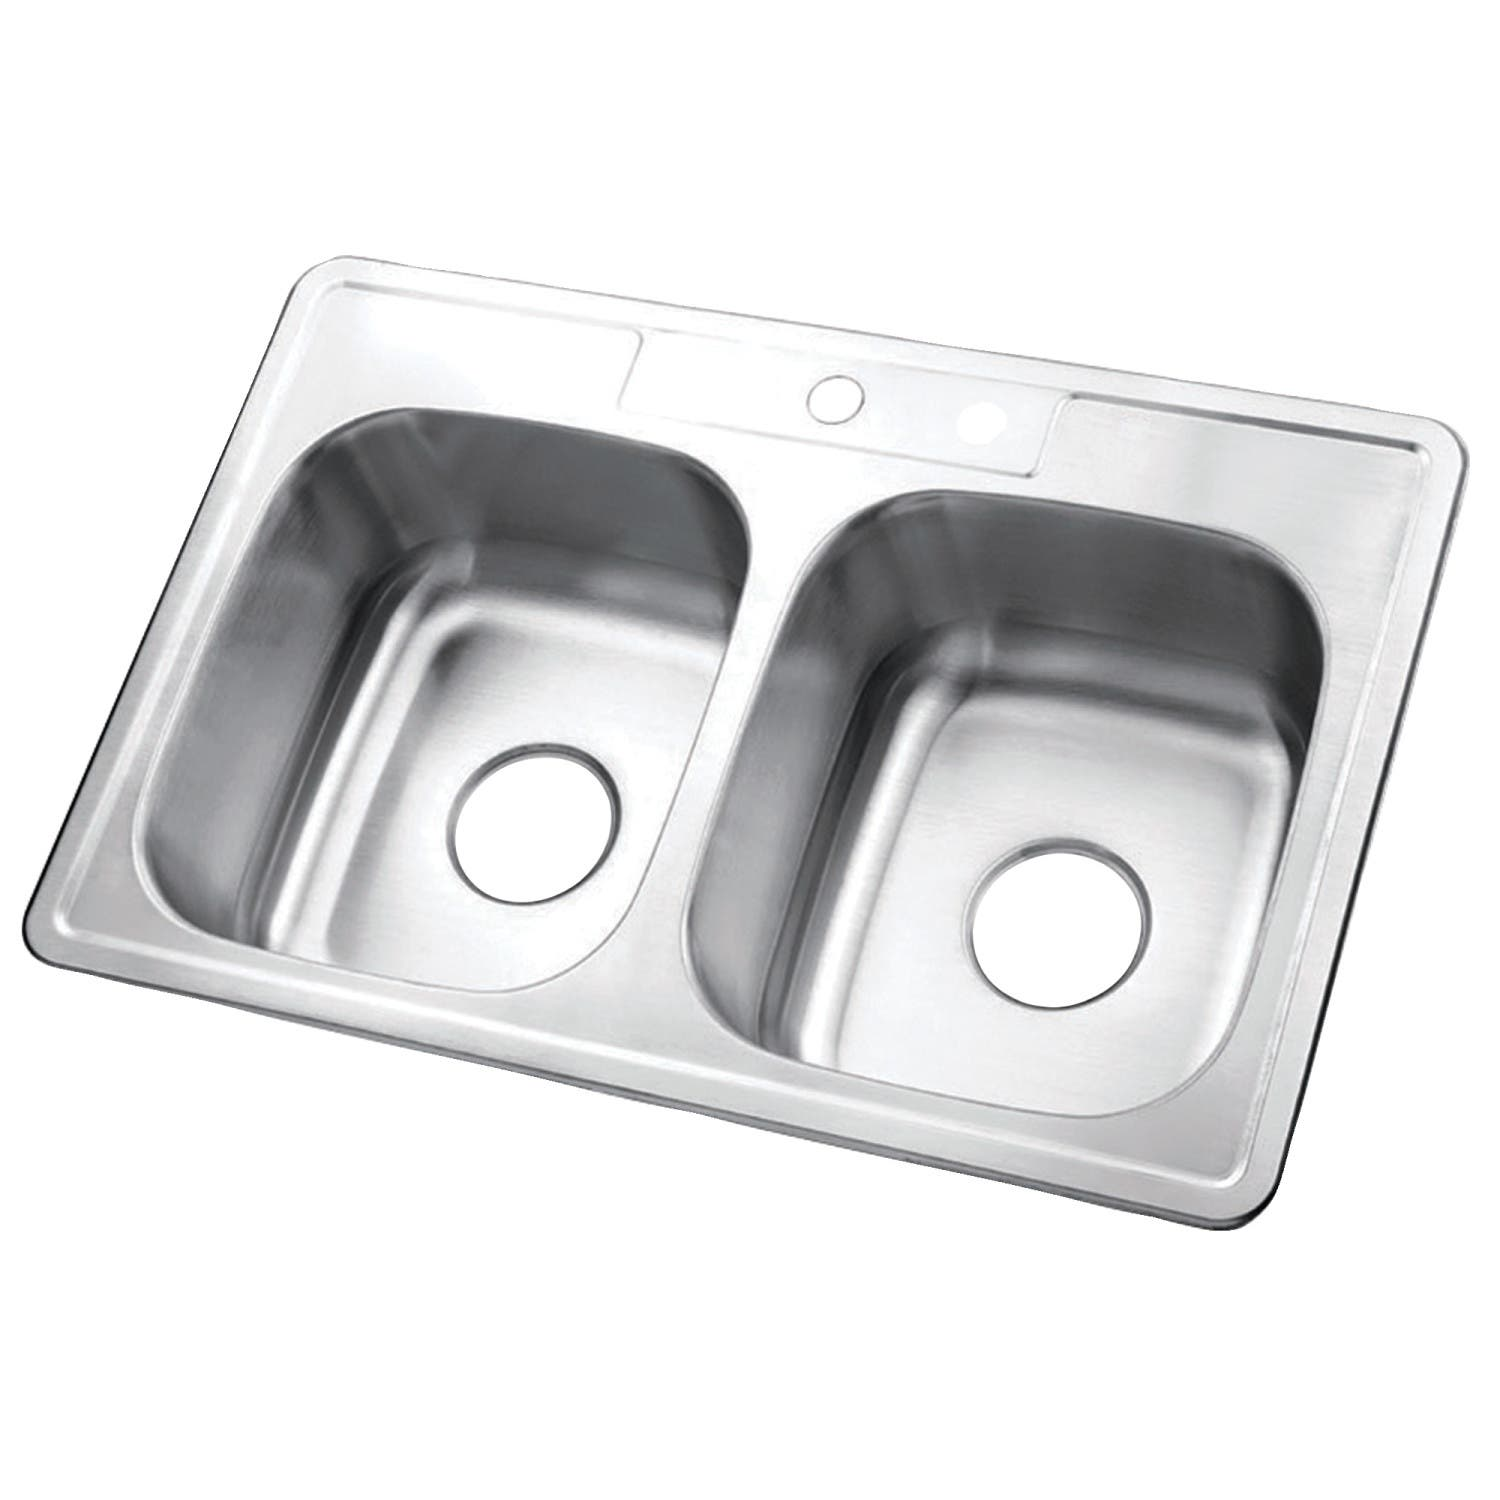 "Gourmetier GKTD332291 33""x22""x9"" Self-Rimming Stainless Steel Kitchen Sink"